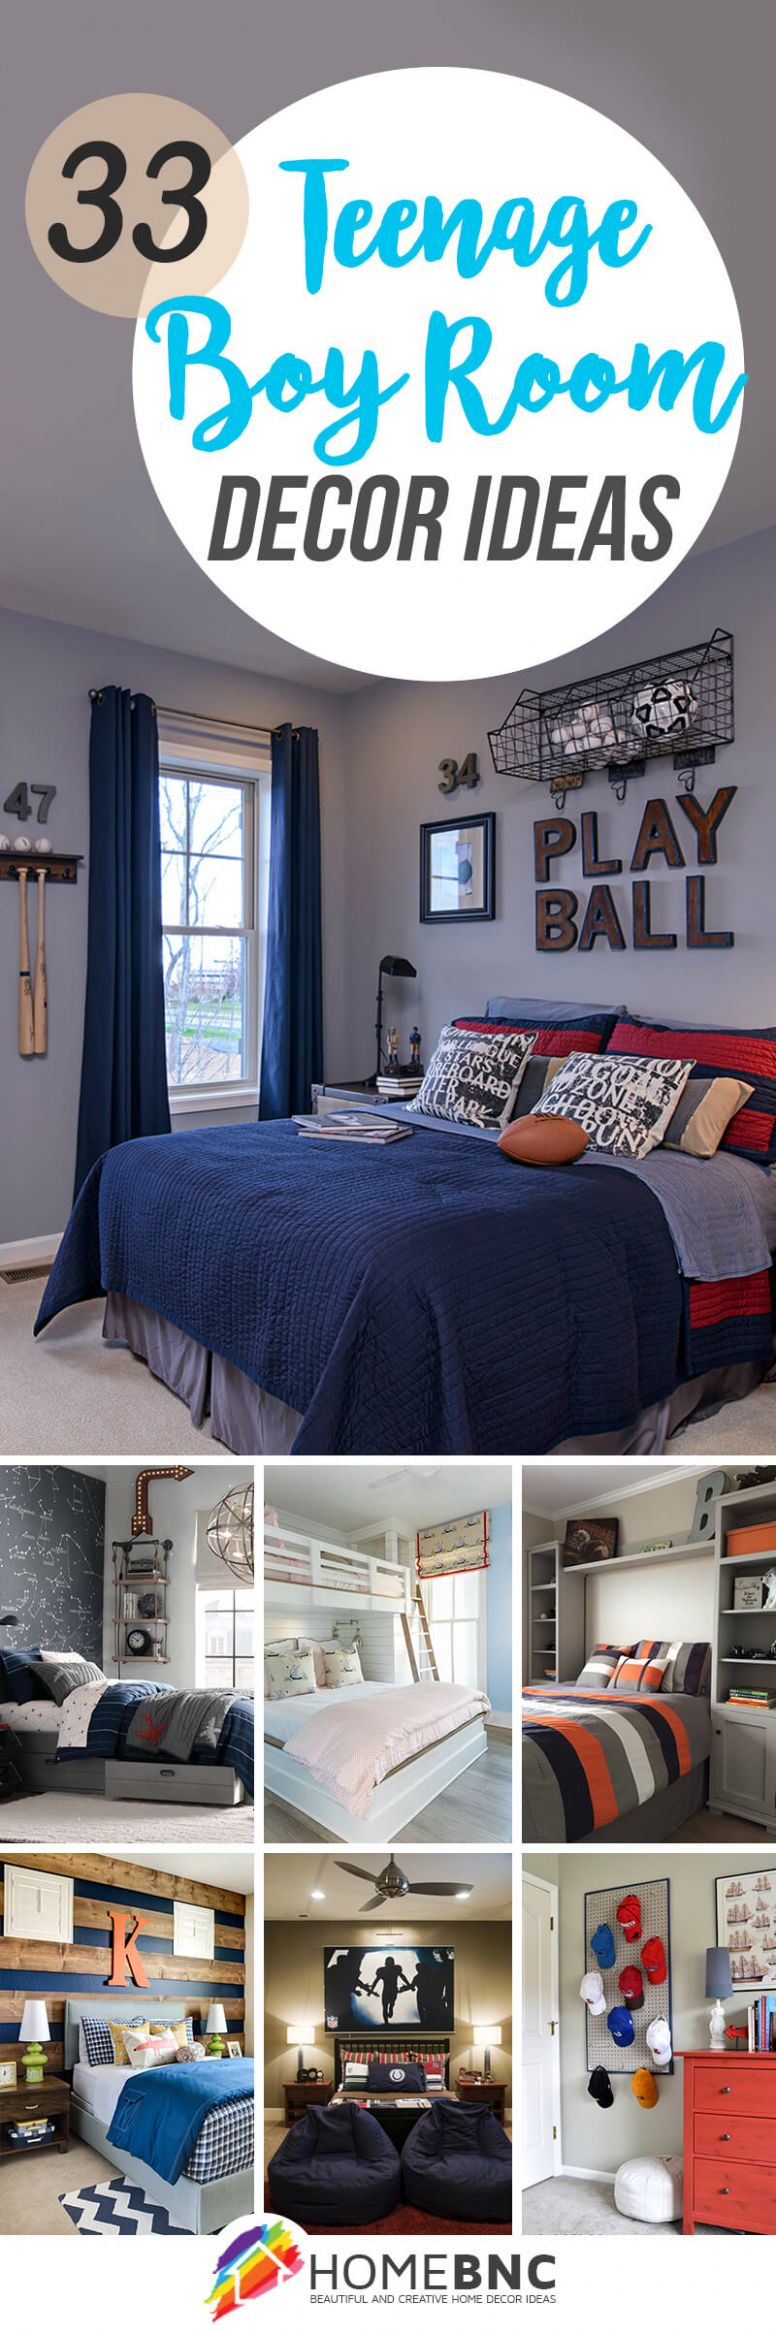 10 Best Teenage Boy Room Decor Ideas and Designs for 10